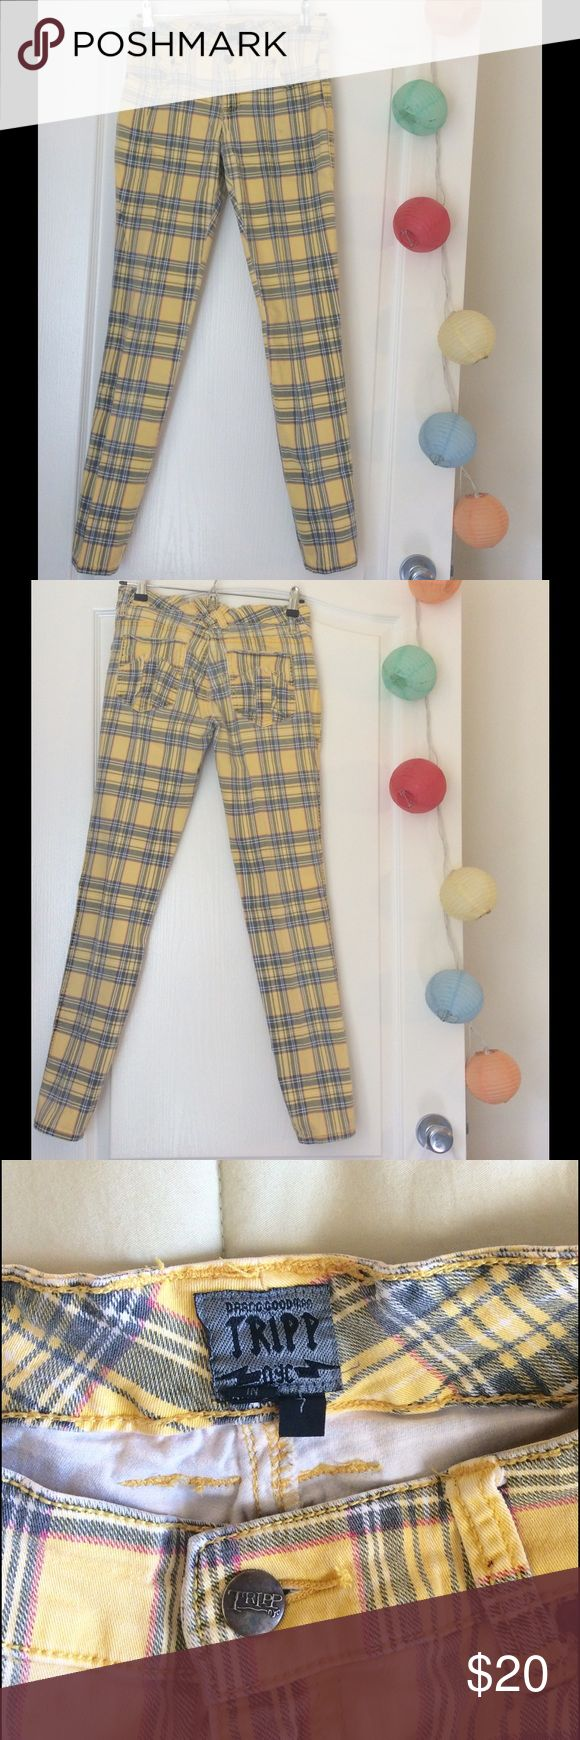 Tripp NYC jeans with cute skull detail! Yellow plaid Tripp NYC pants Size 7 true to size. Lowe rise. Good condition but I really loved those pants so the color is a little faded from wear and wash. No major flaws but there is a small pinhead sized ink stain on the leg and the back belt loop has some fluff that pokes out. If you love it make me an offer! Tripp nyc Jeans Skinny